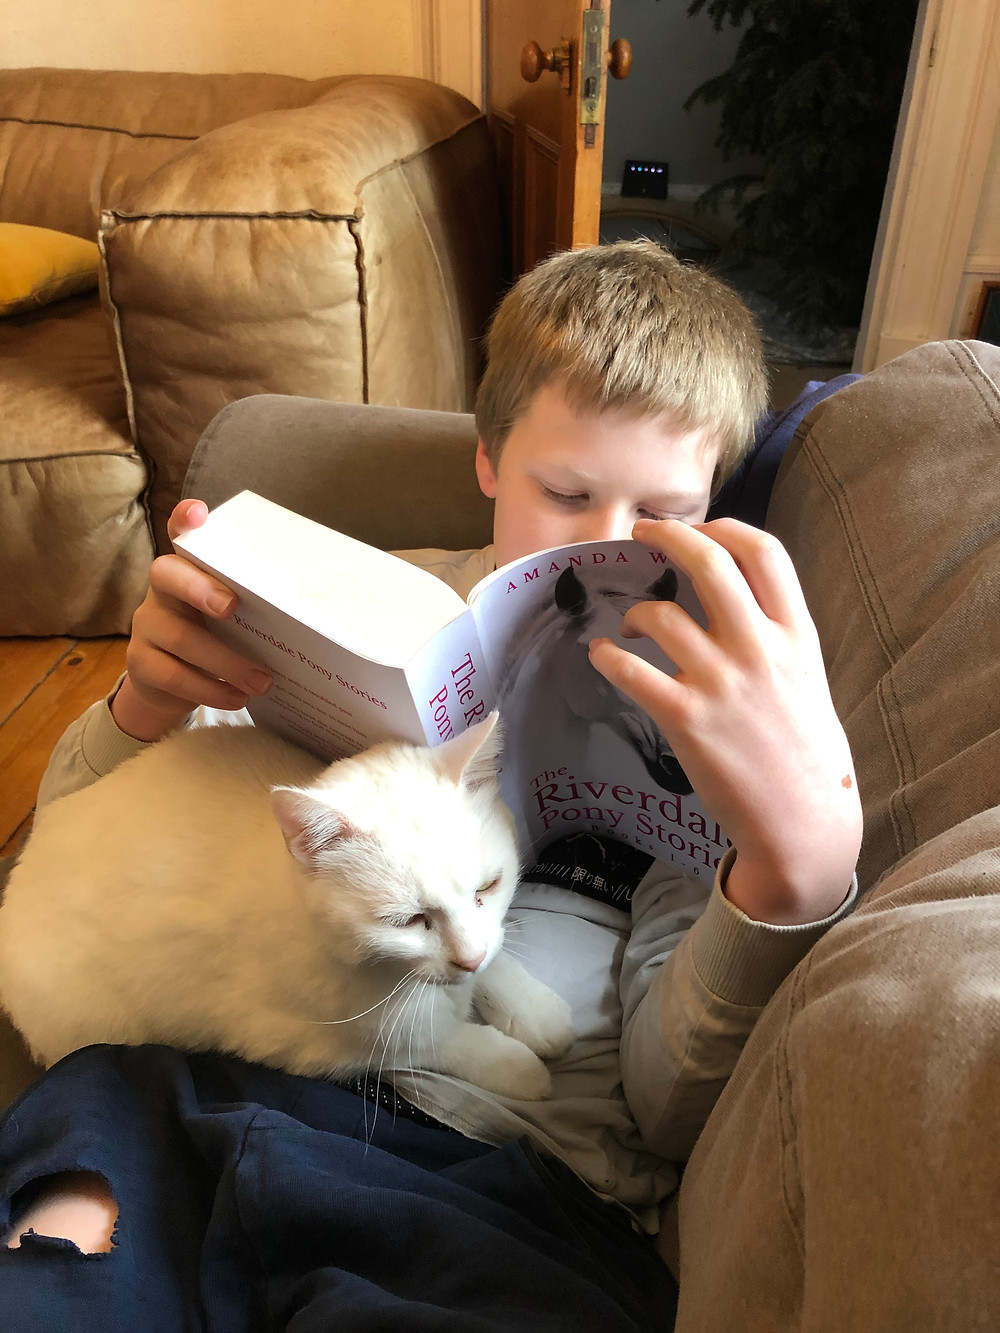 Boy on Sofa reading book with cat.